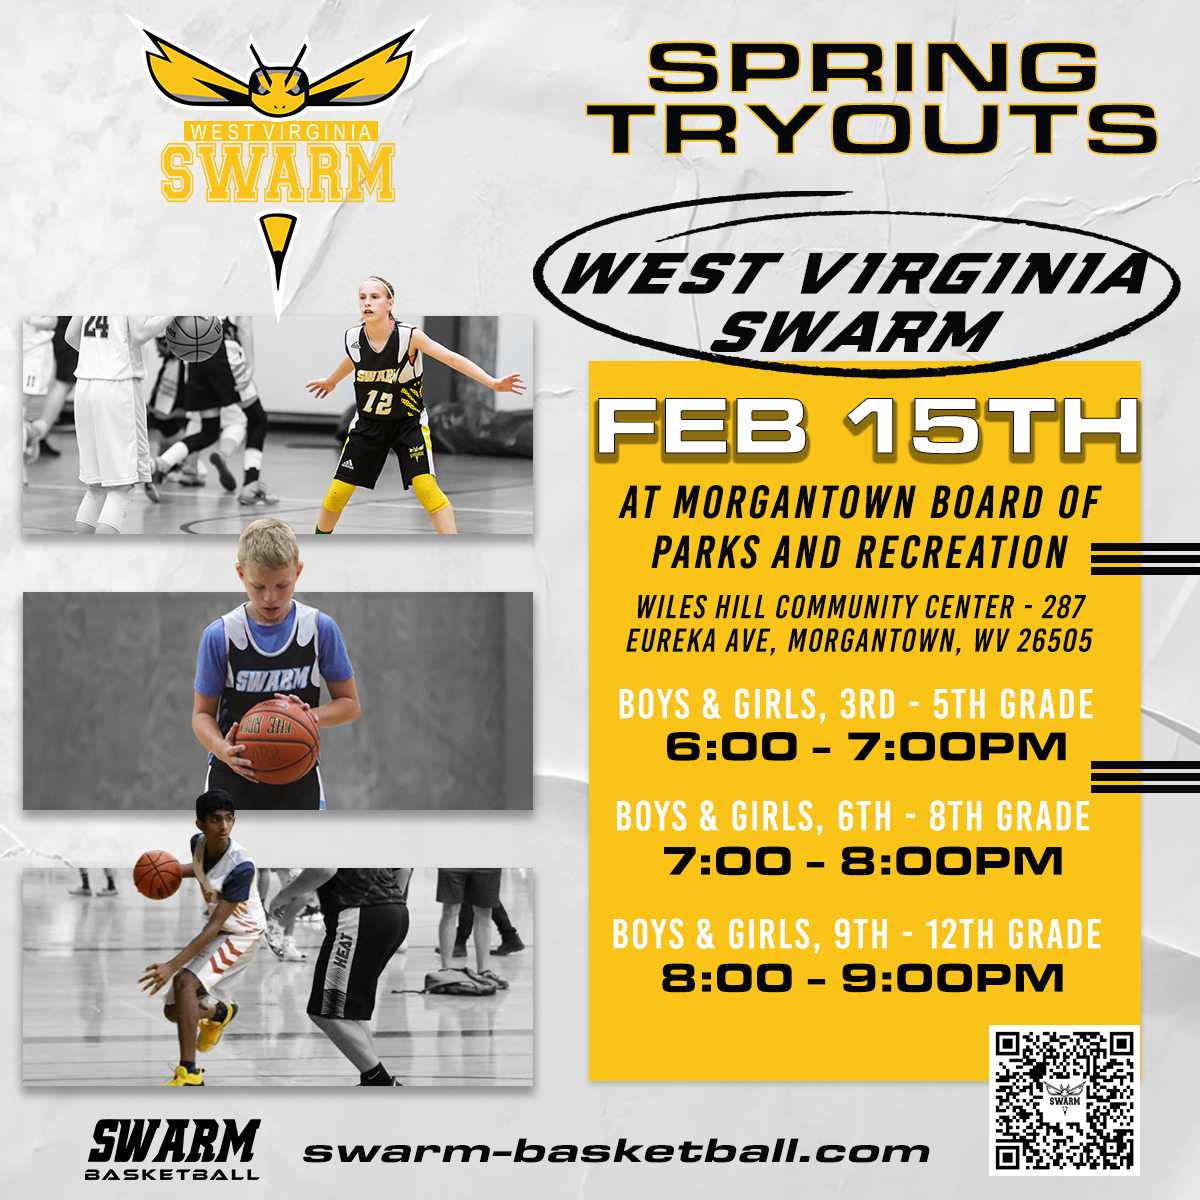 Spring21Tryouts_WestVirginia2ndL